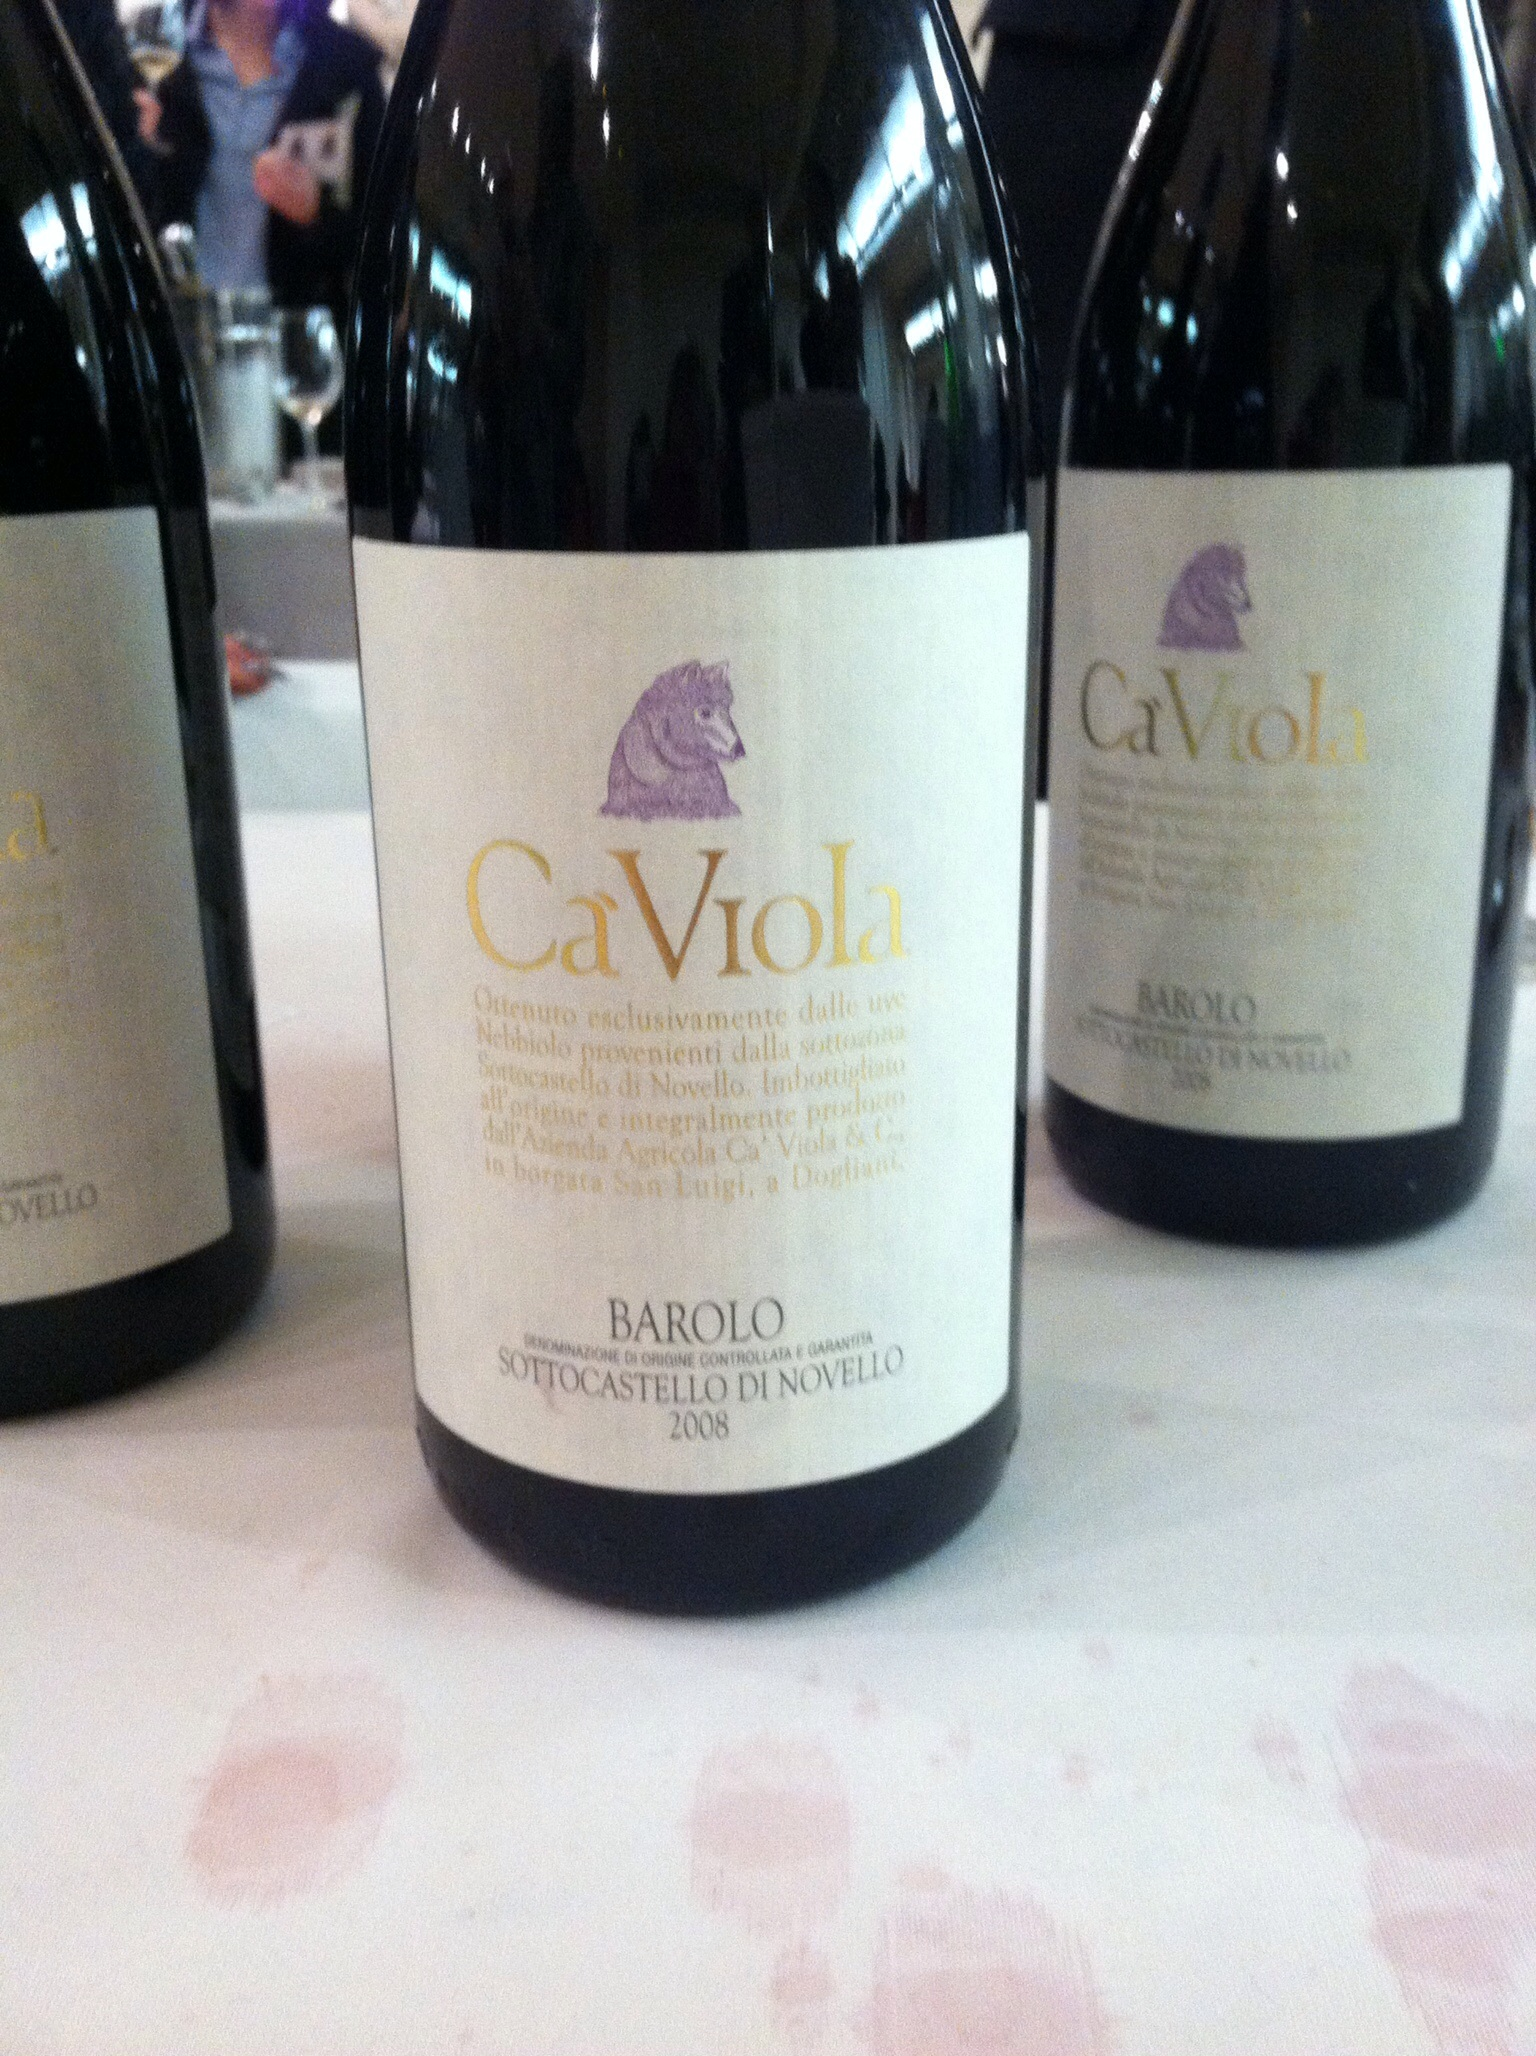 More Barolo